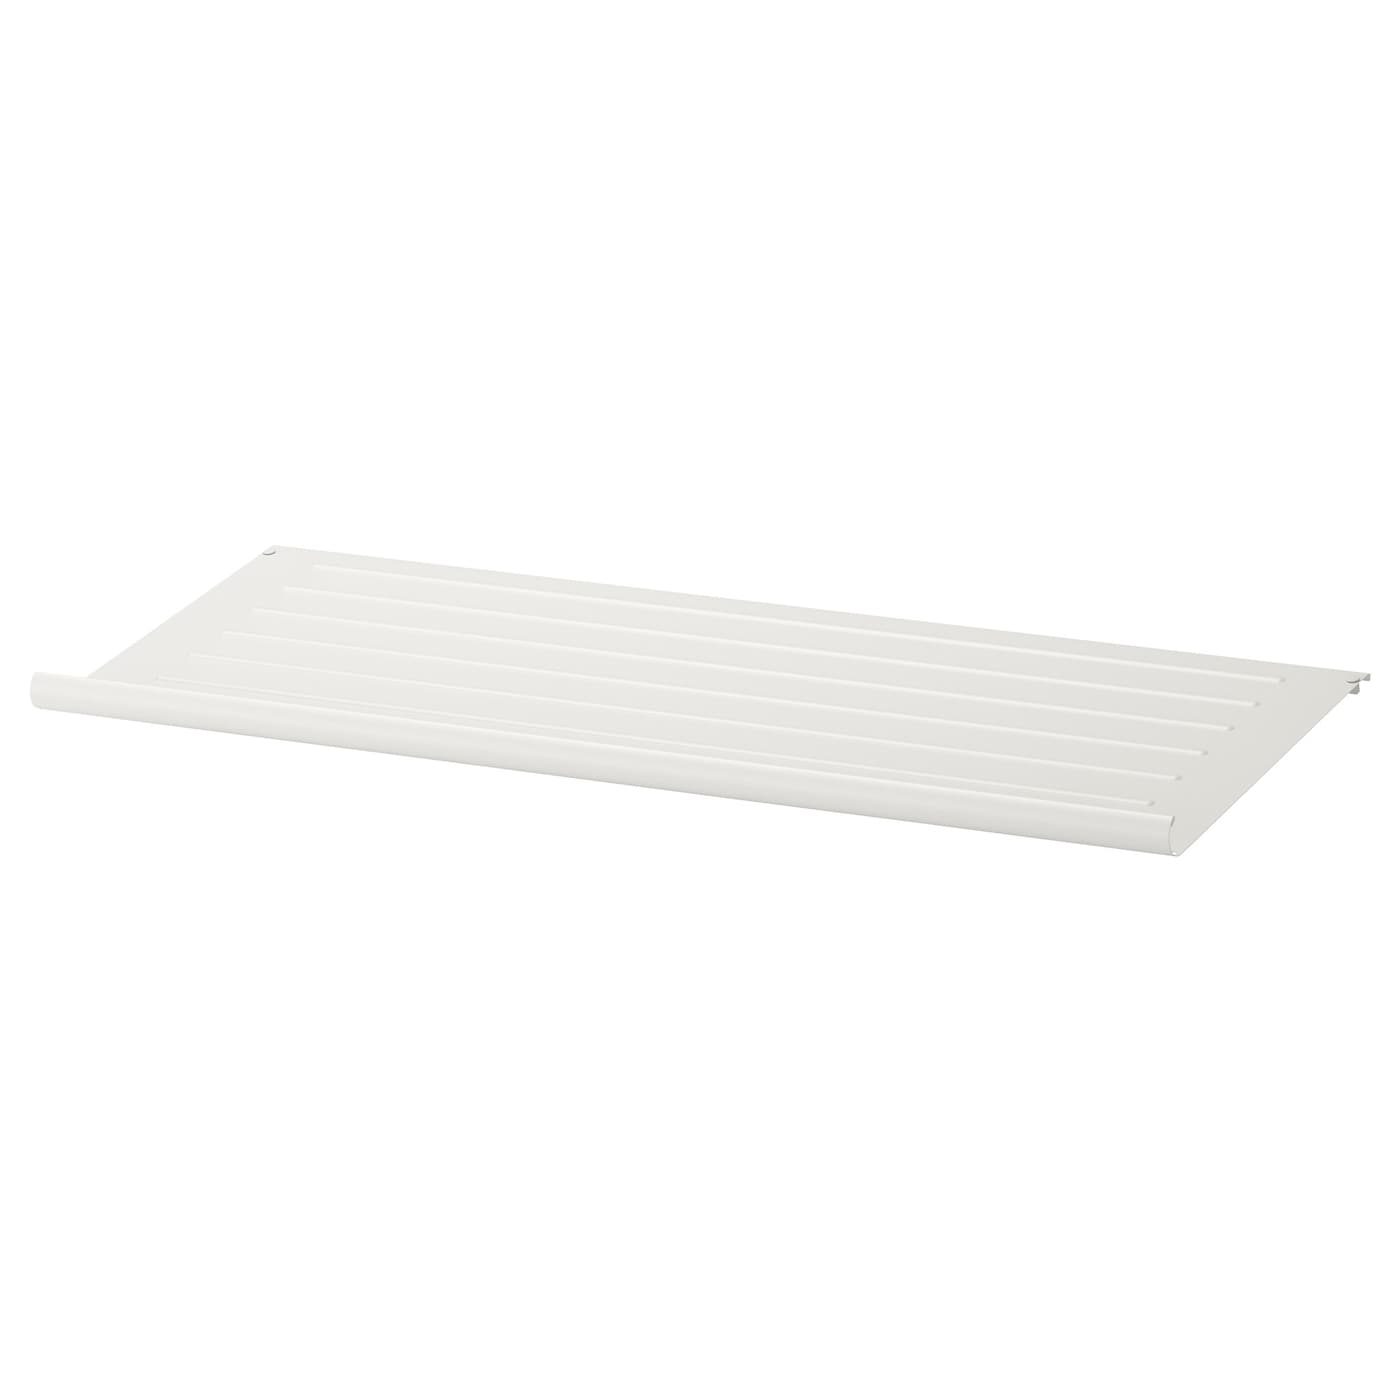 komplement shoe shelf white 100 x 35 cm ikea. Black Bedroom Furniture Sets. Home Design Ideas